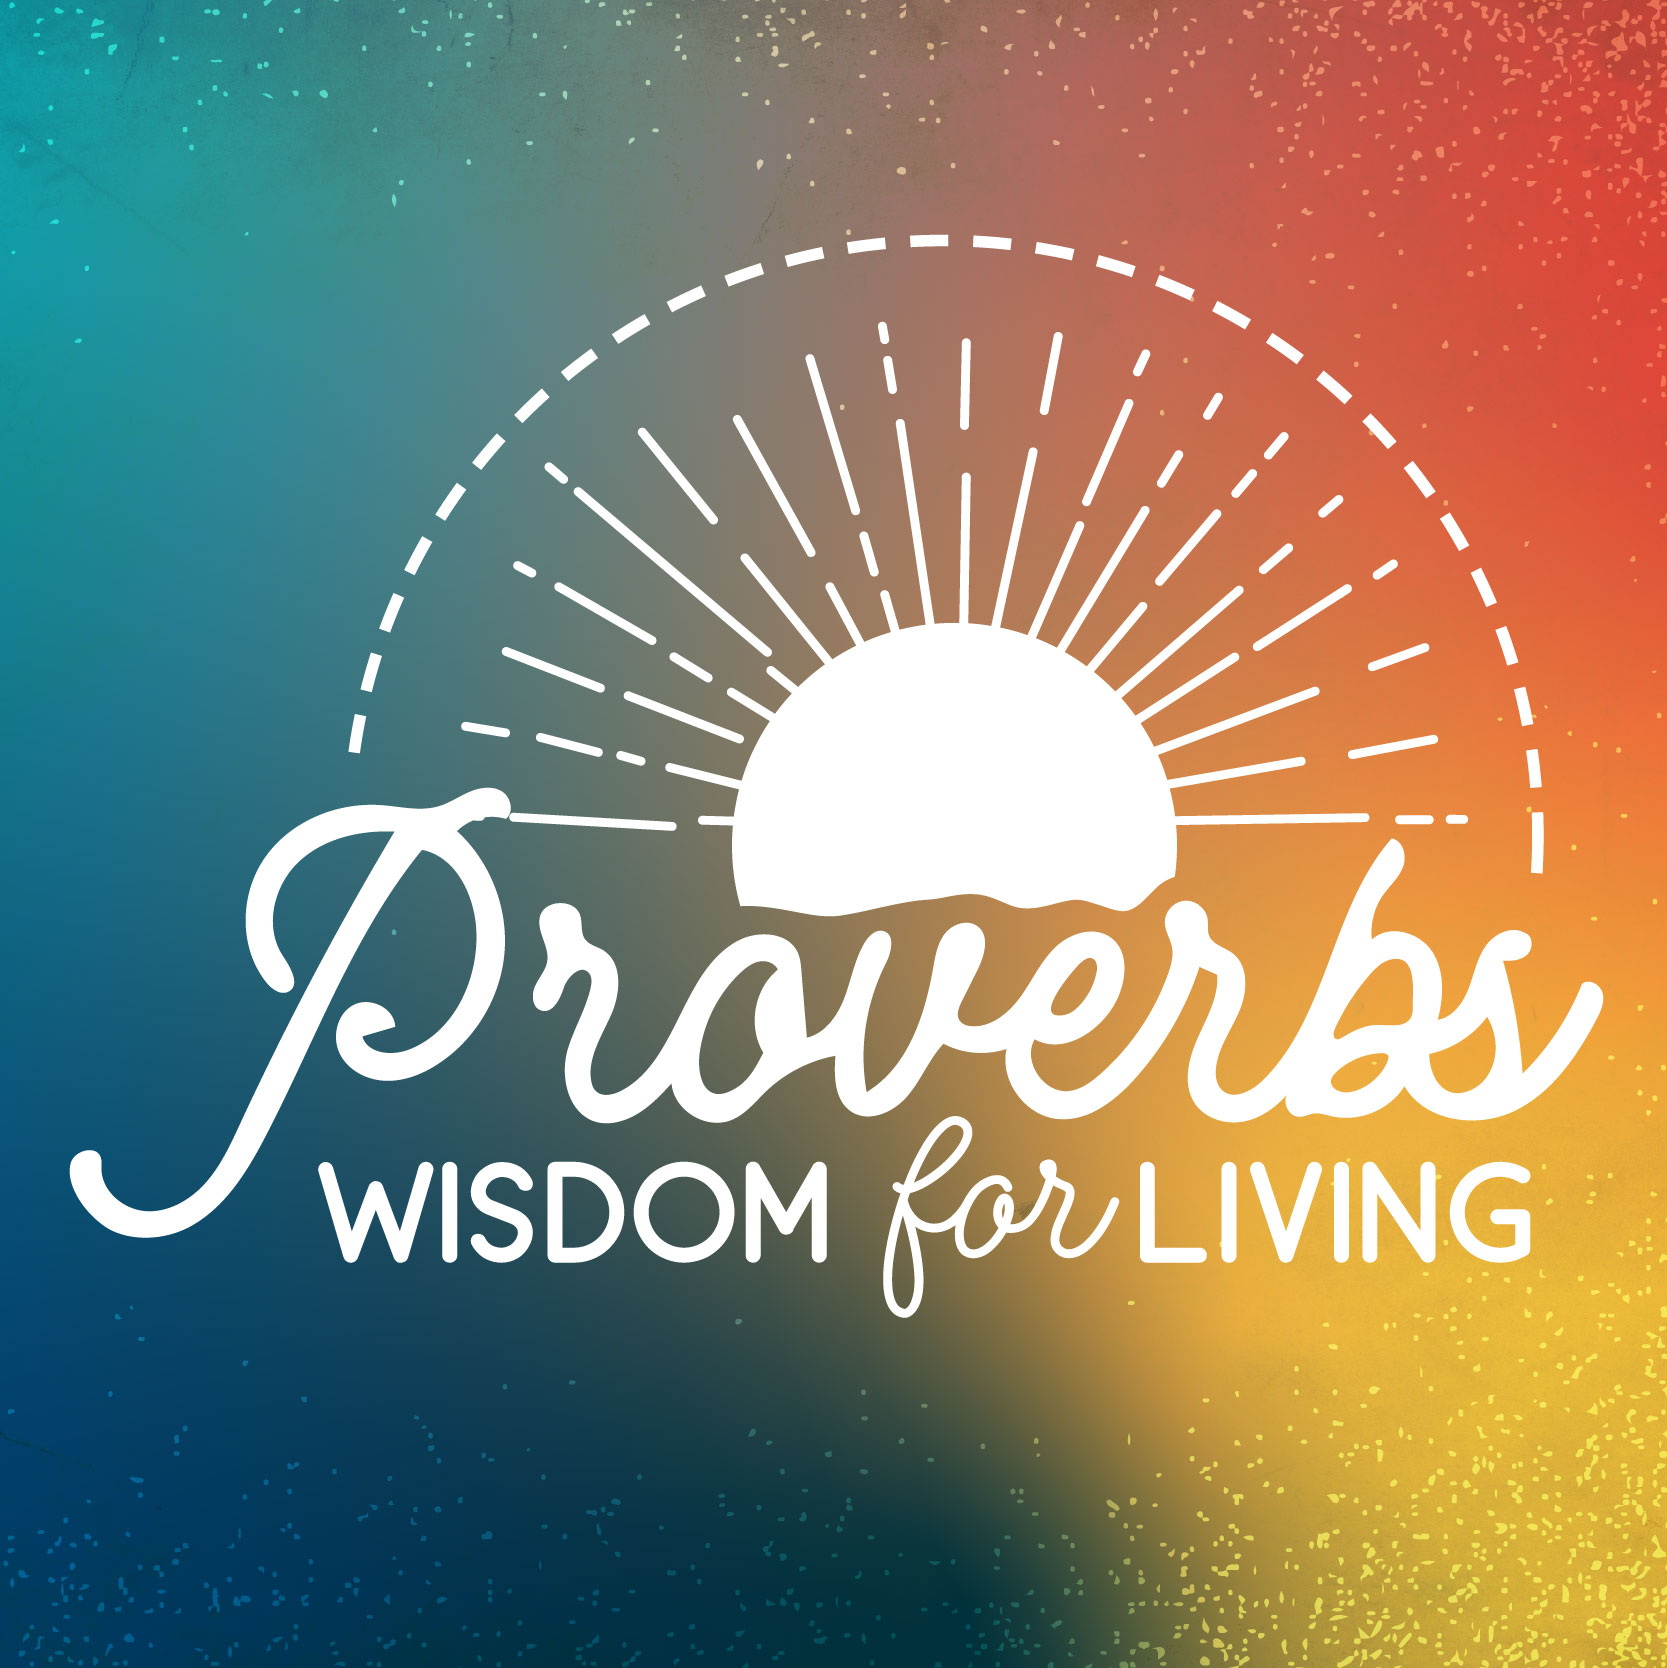 Proverbs - Wisdom for Living